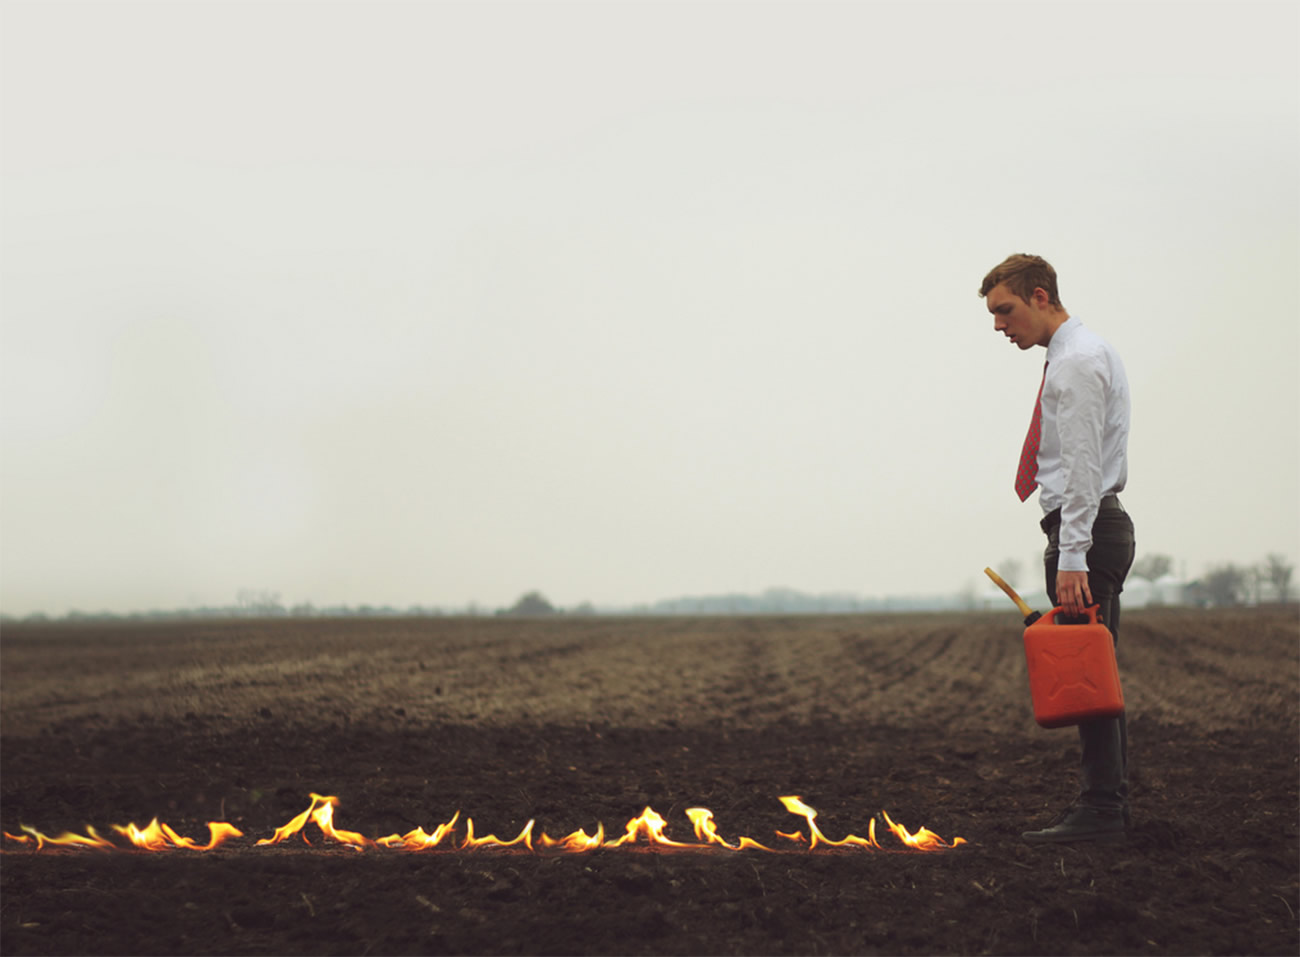 gasoline creates fire line on field. photography by kyle thompson